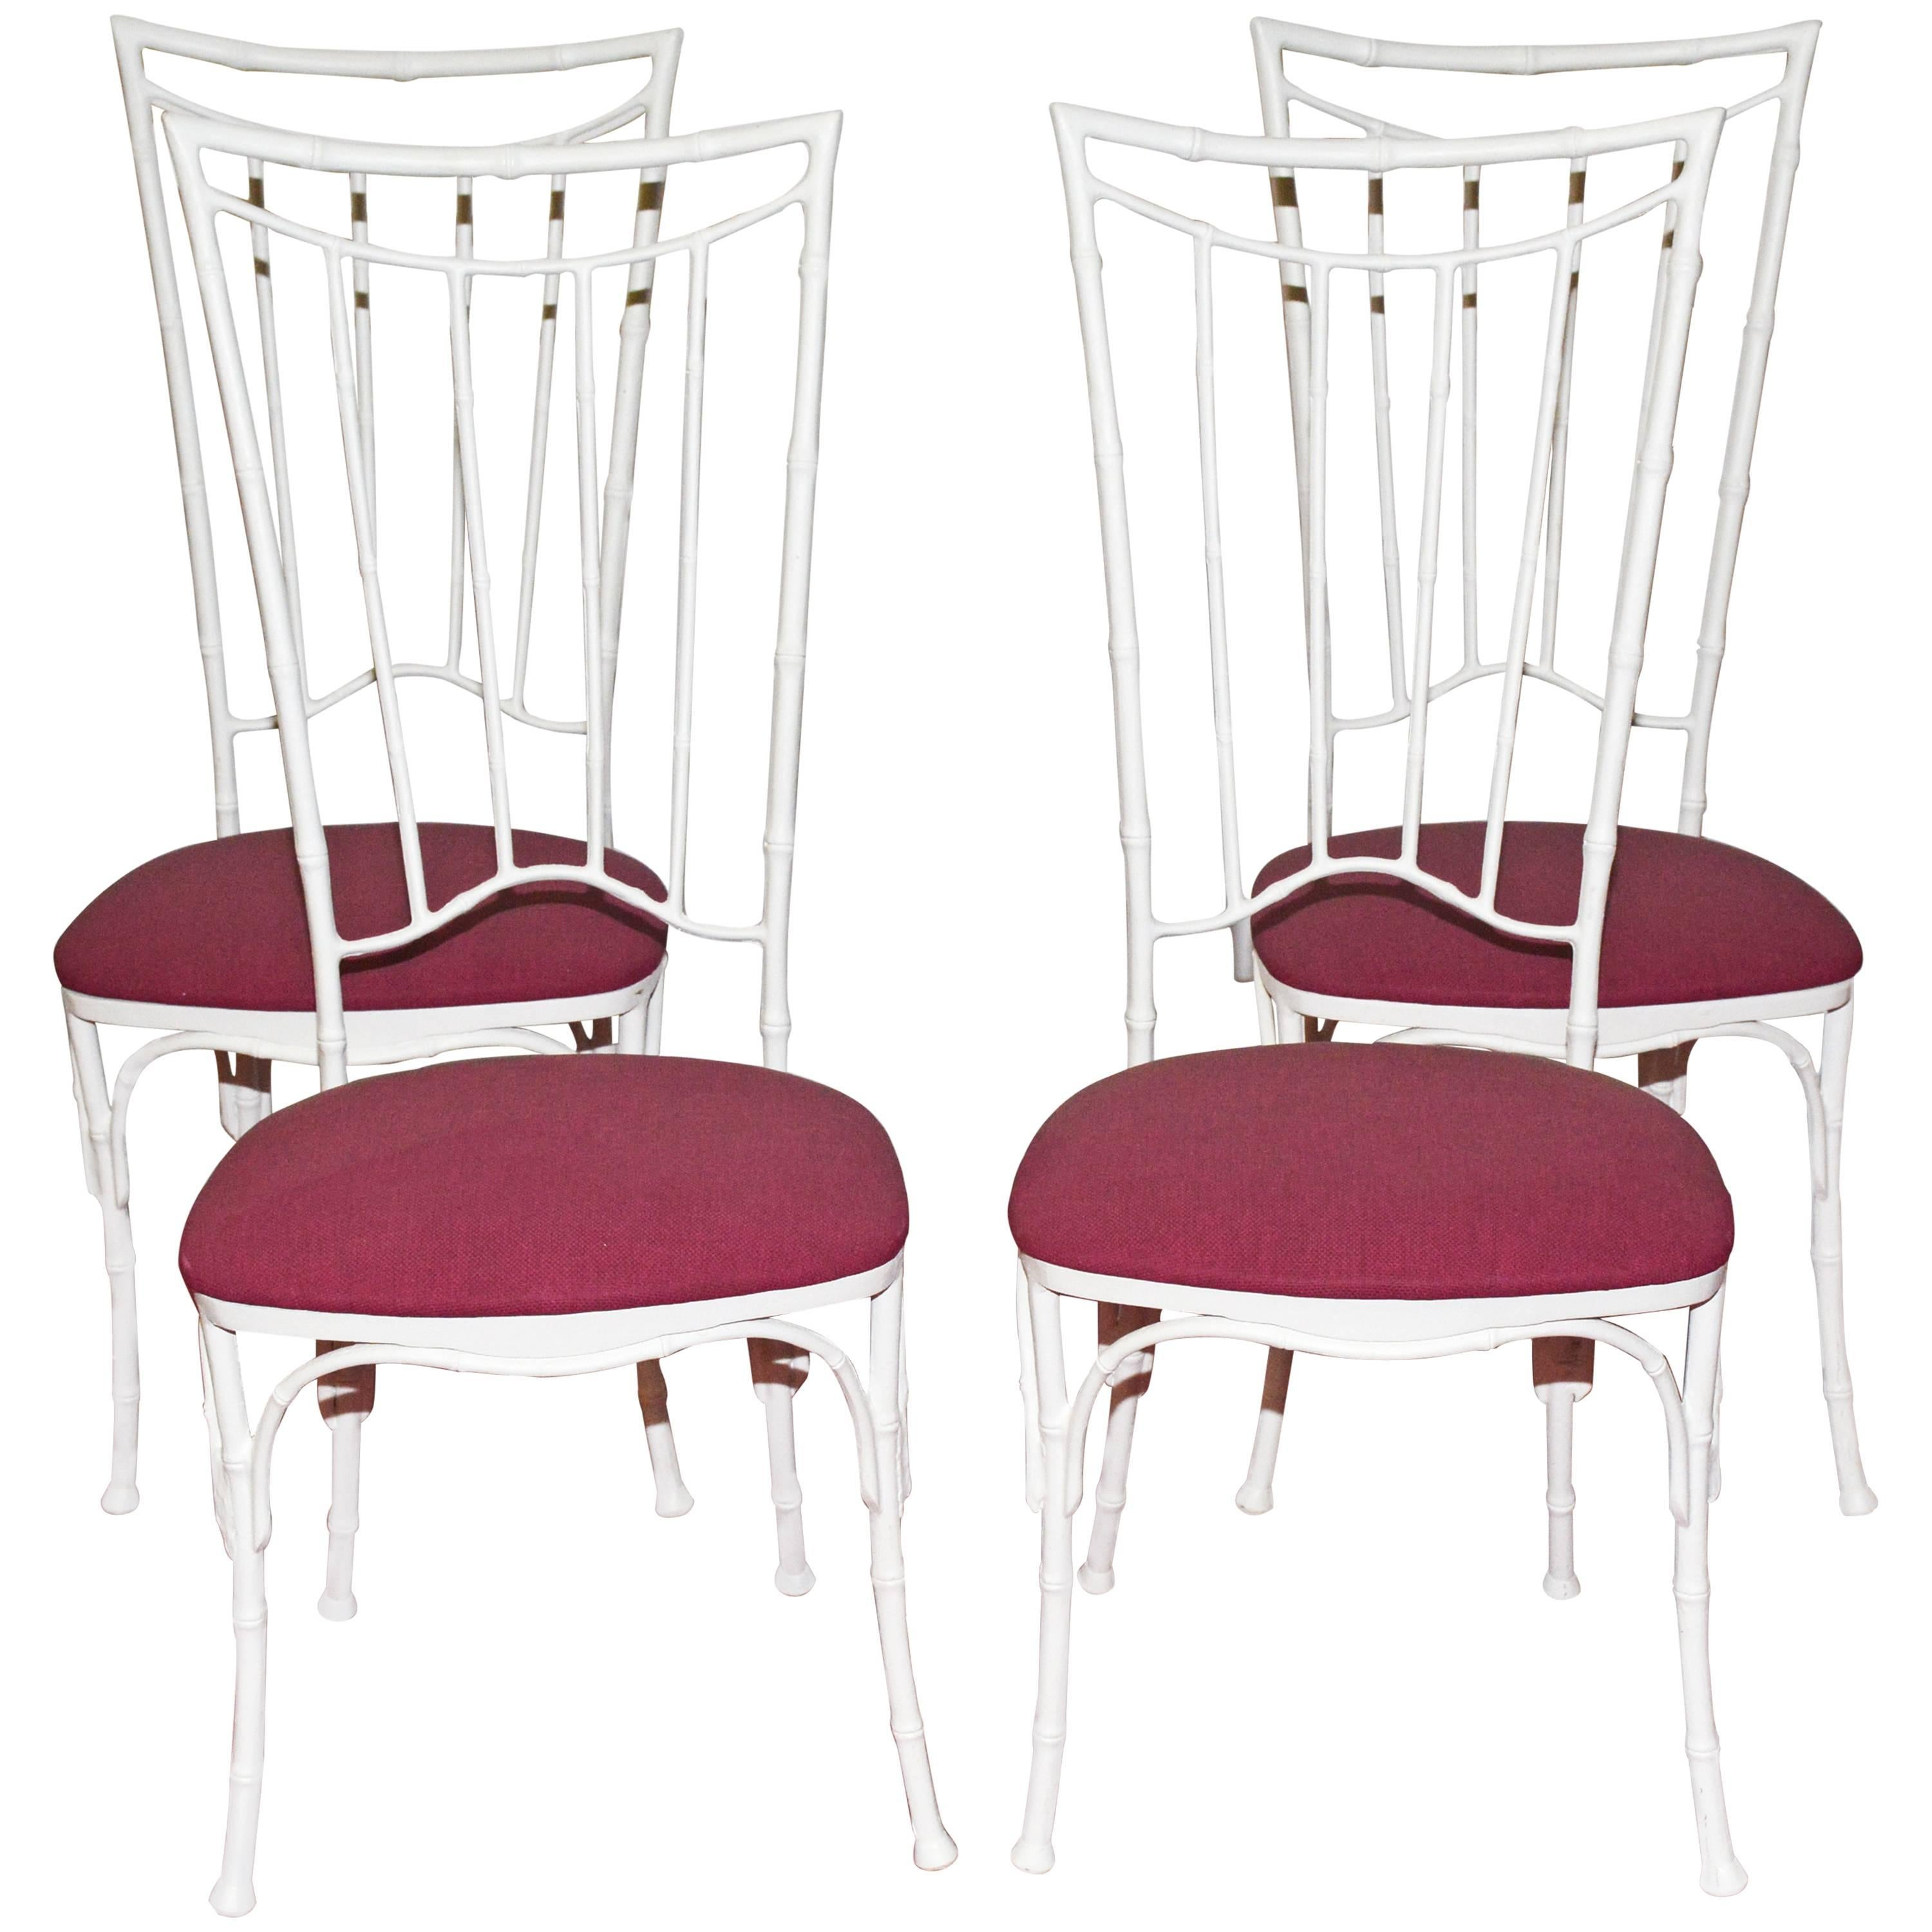 Four Painted Faux Bamboo Wrought Iron Chairs